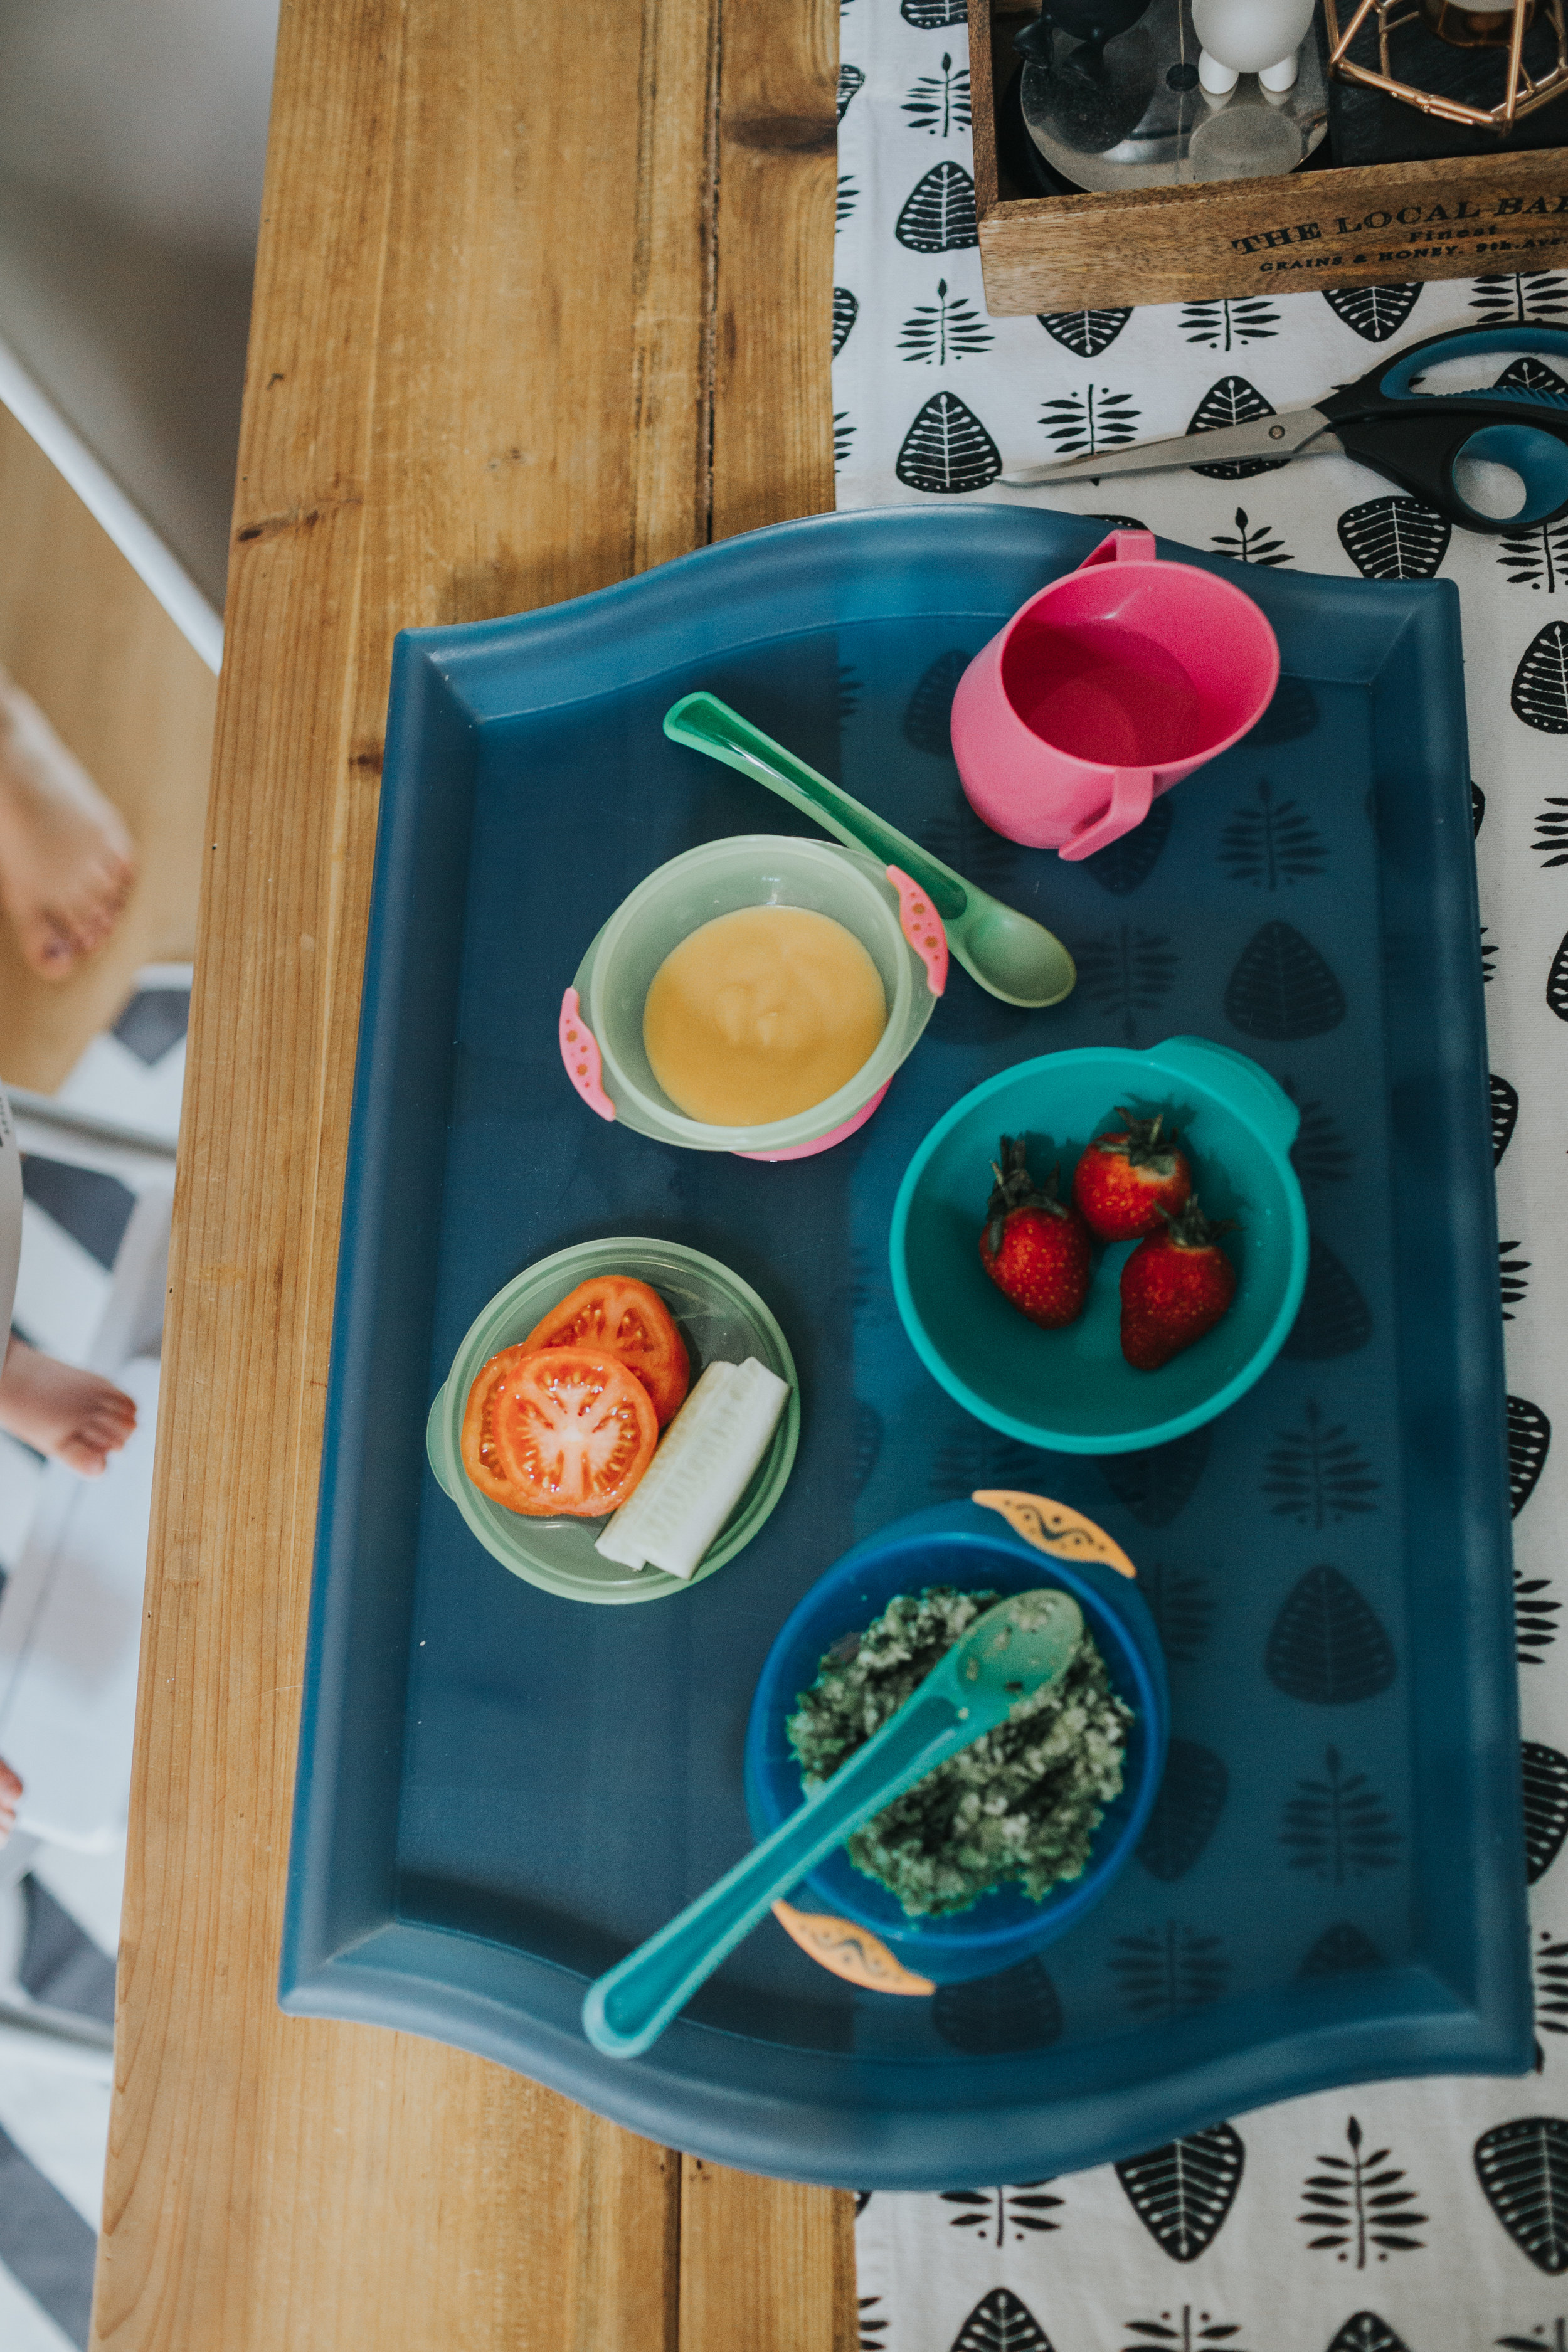 A photo of the babies lunch, strawberries, tomato, pea pure and unknown.